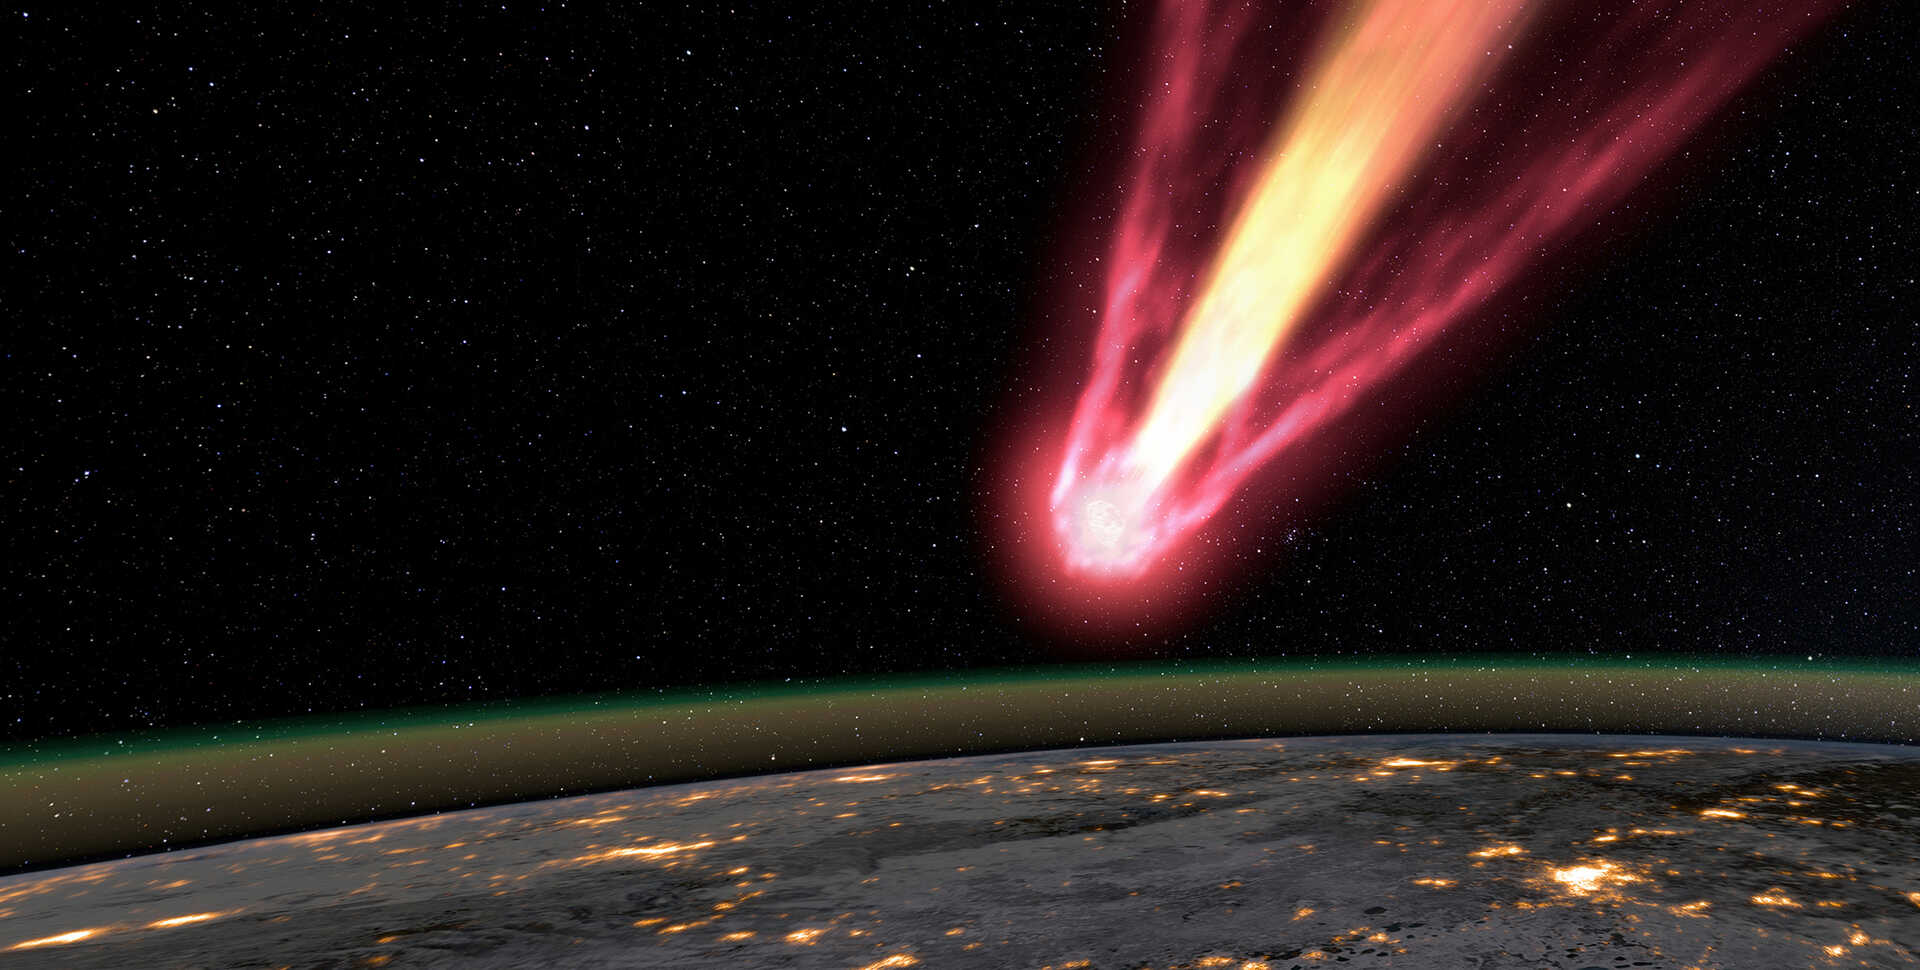 Chelyabinsk meteor Image Credit: California Academy of Sciences Visualization StudioChelyabinsk. Image